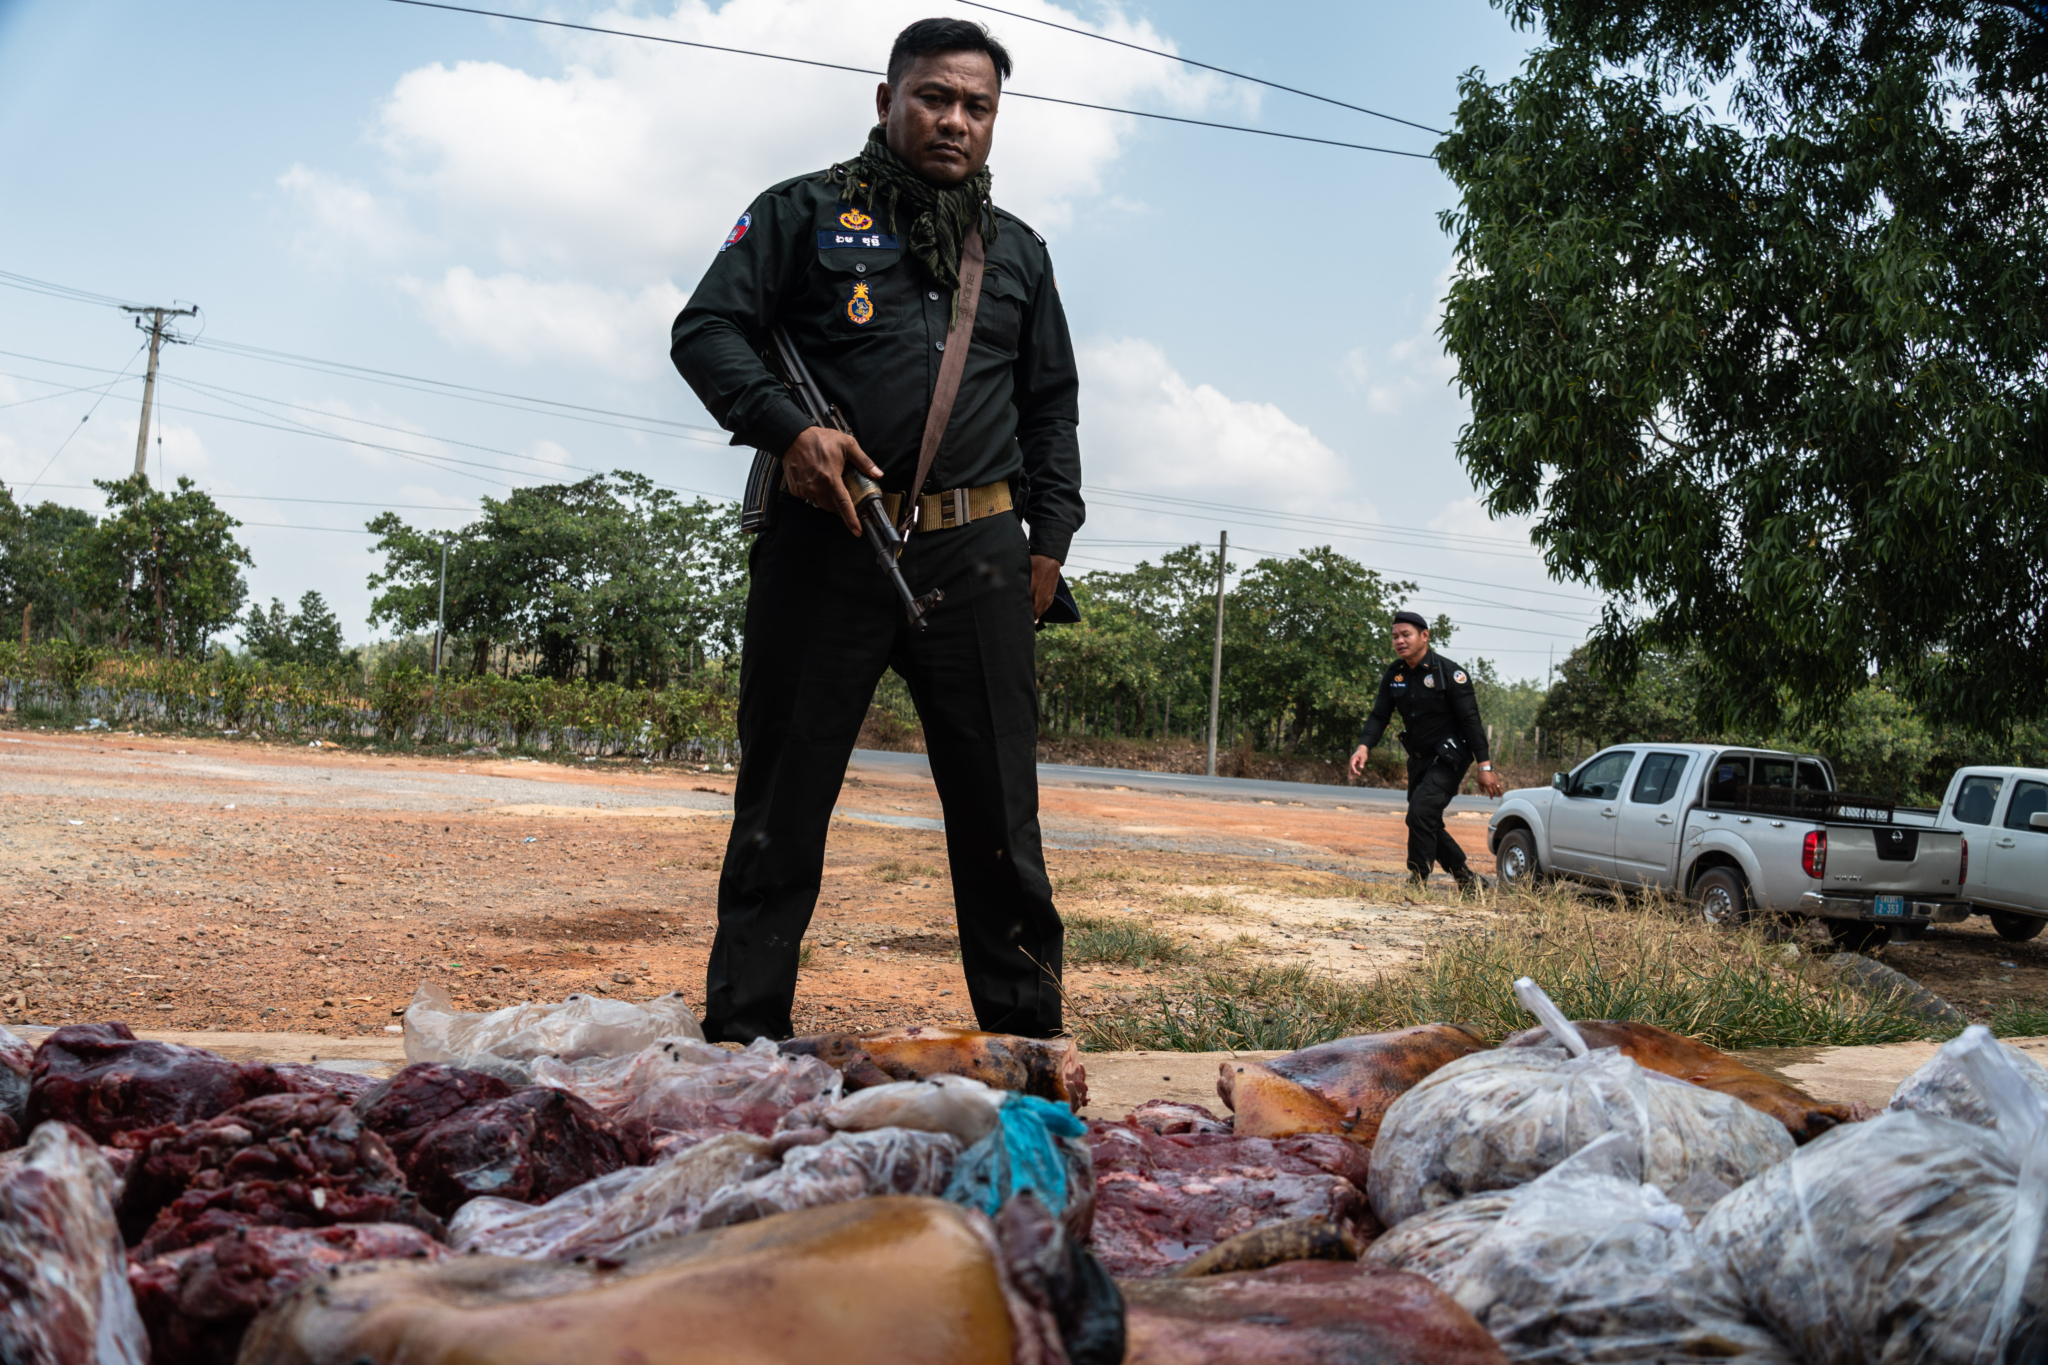 Huge quantities of wildlife meat seized